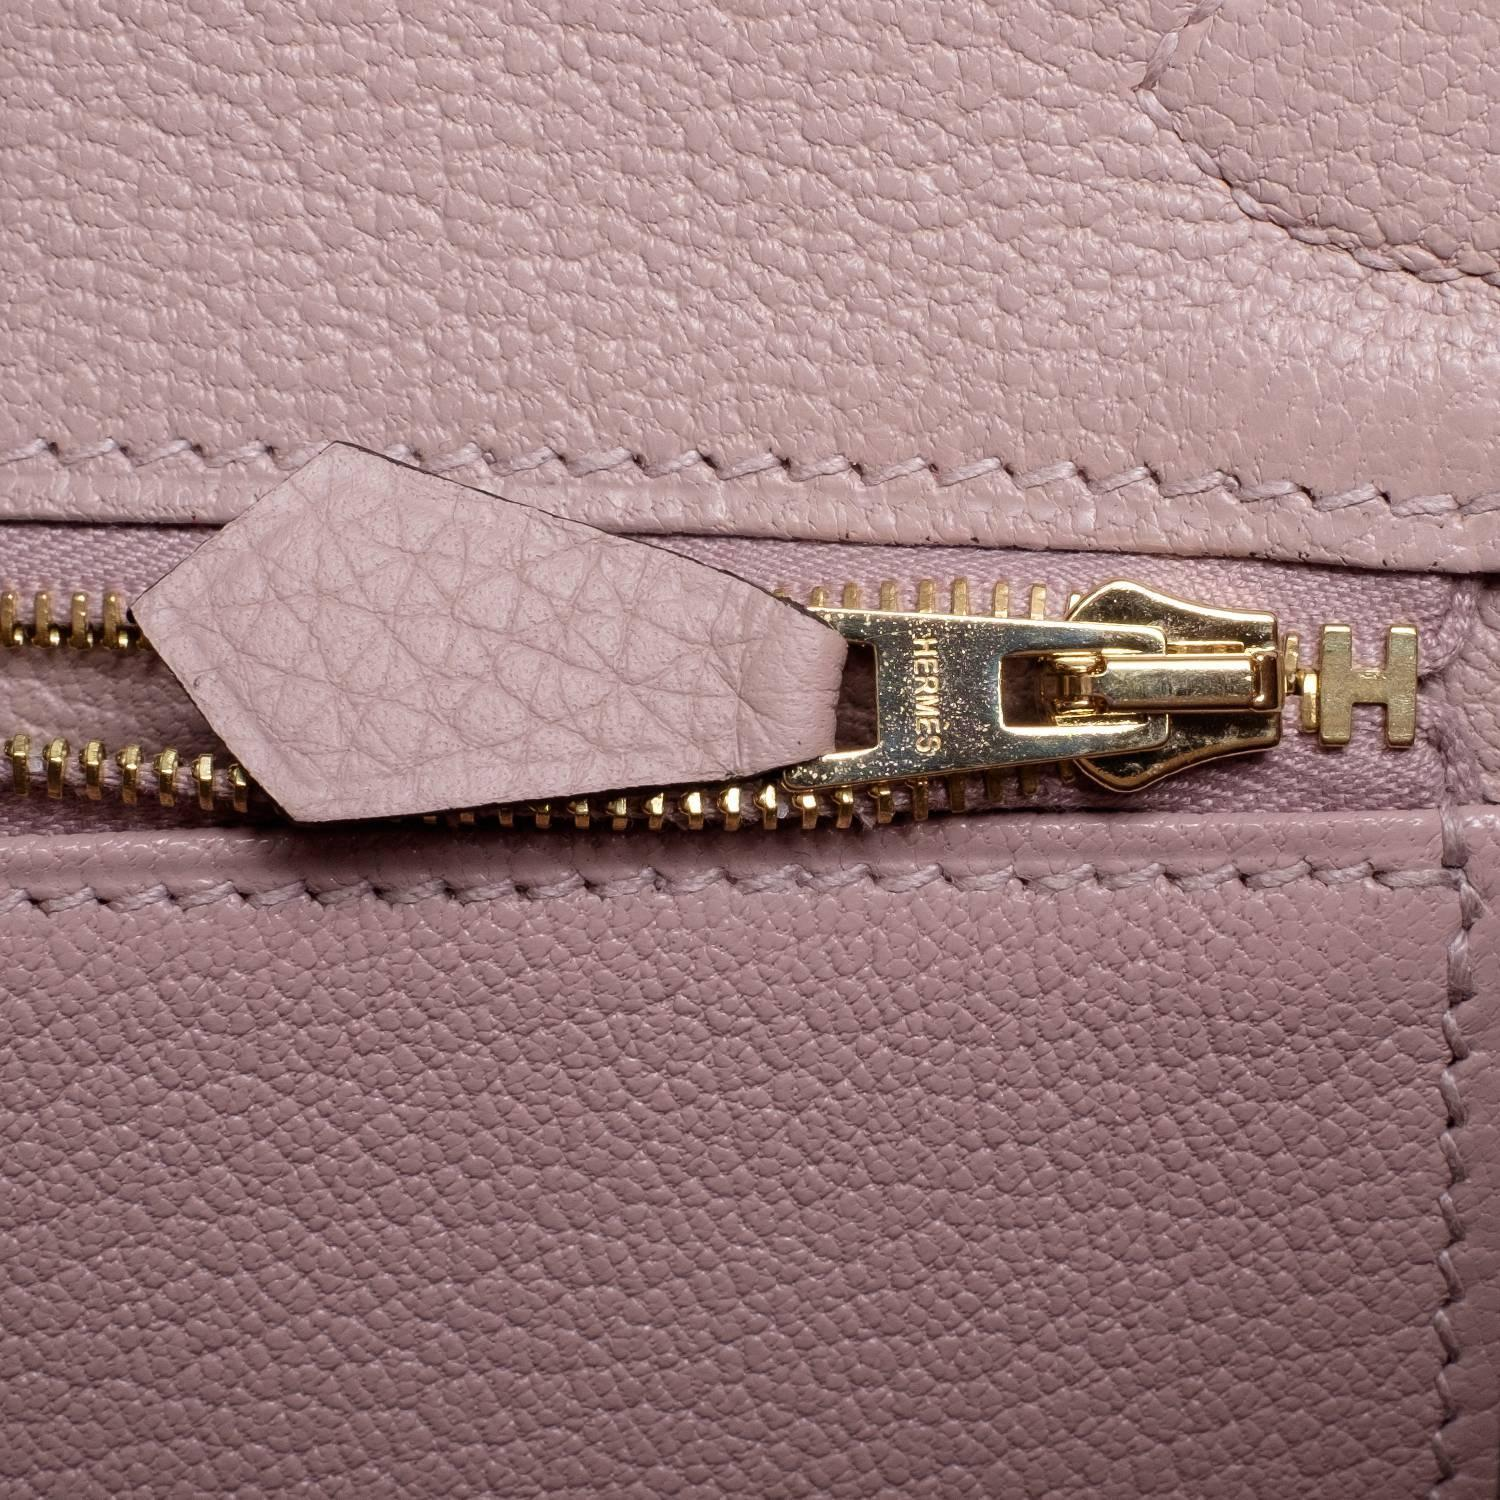 where to buy hermes bags online - Hermes Birkin Bag 30cm Glycine with Gold Hardware Never Carried